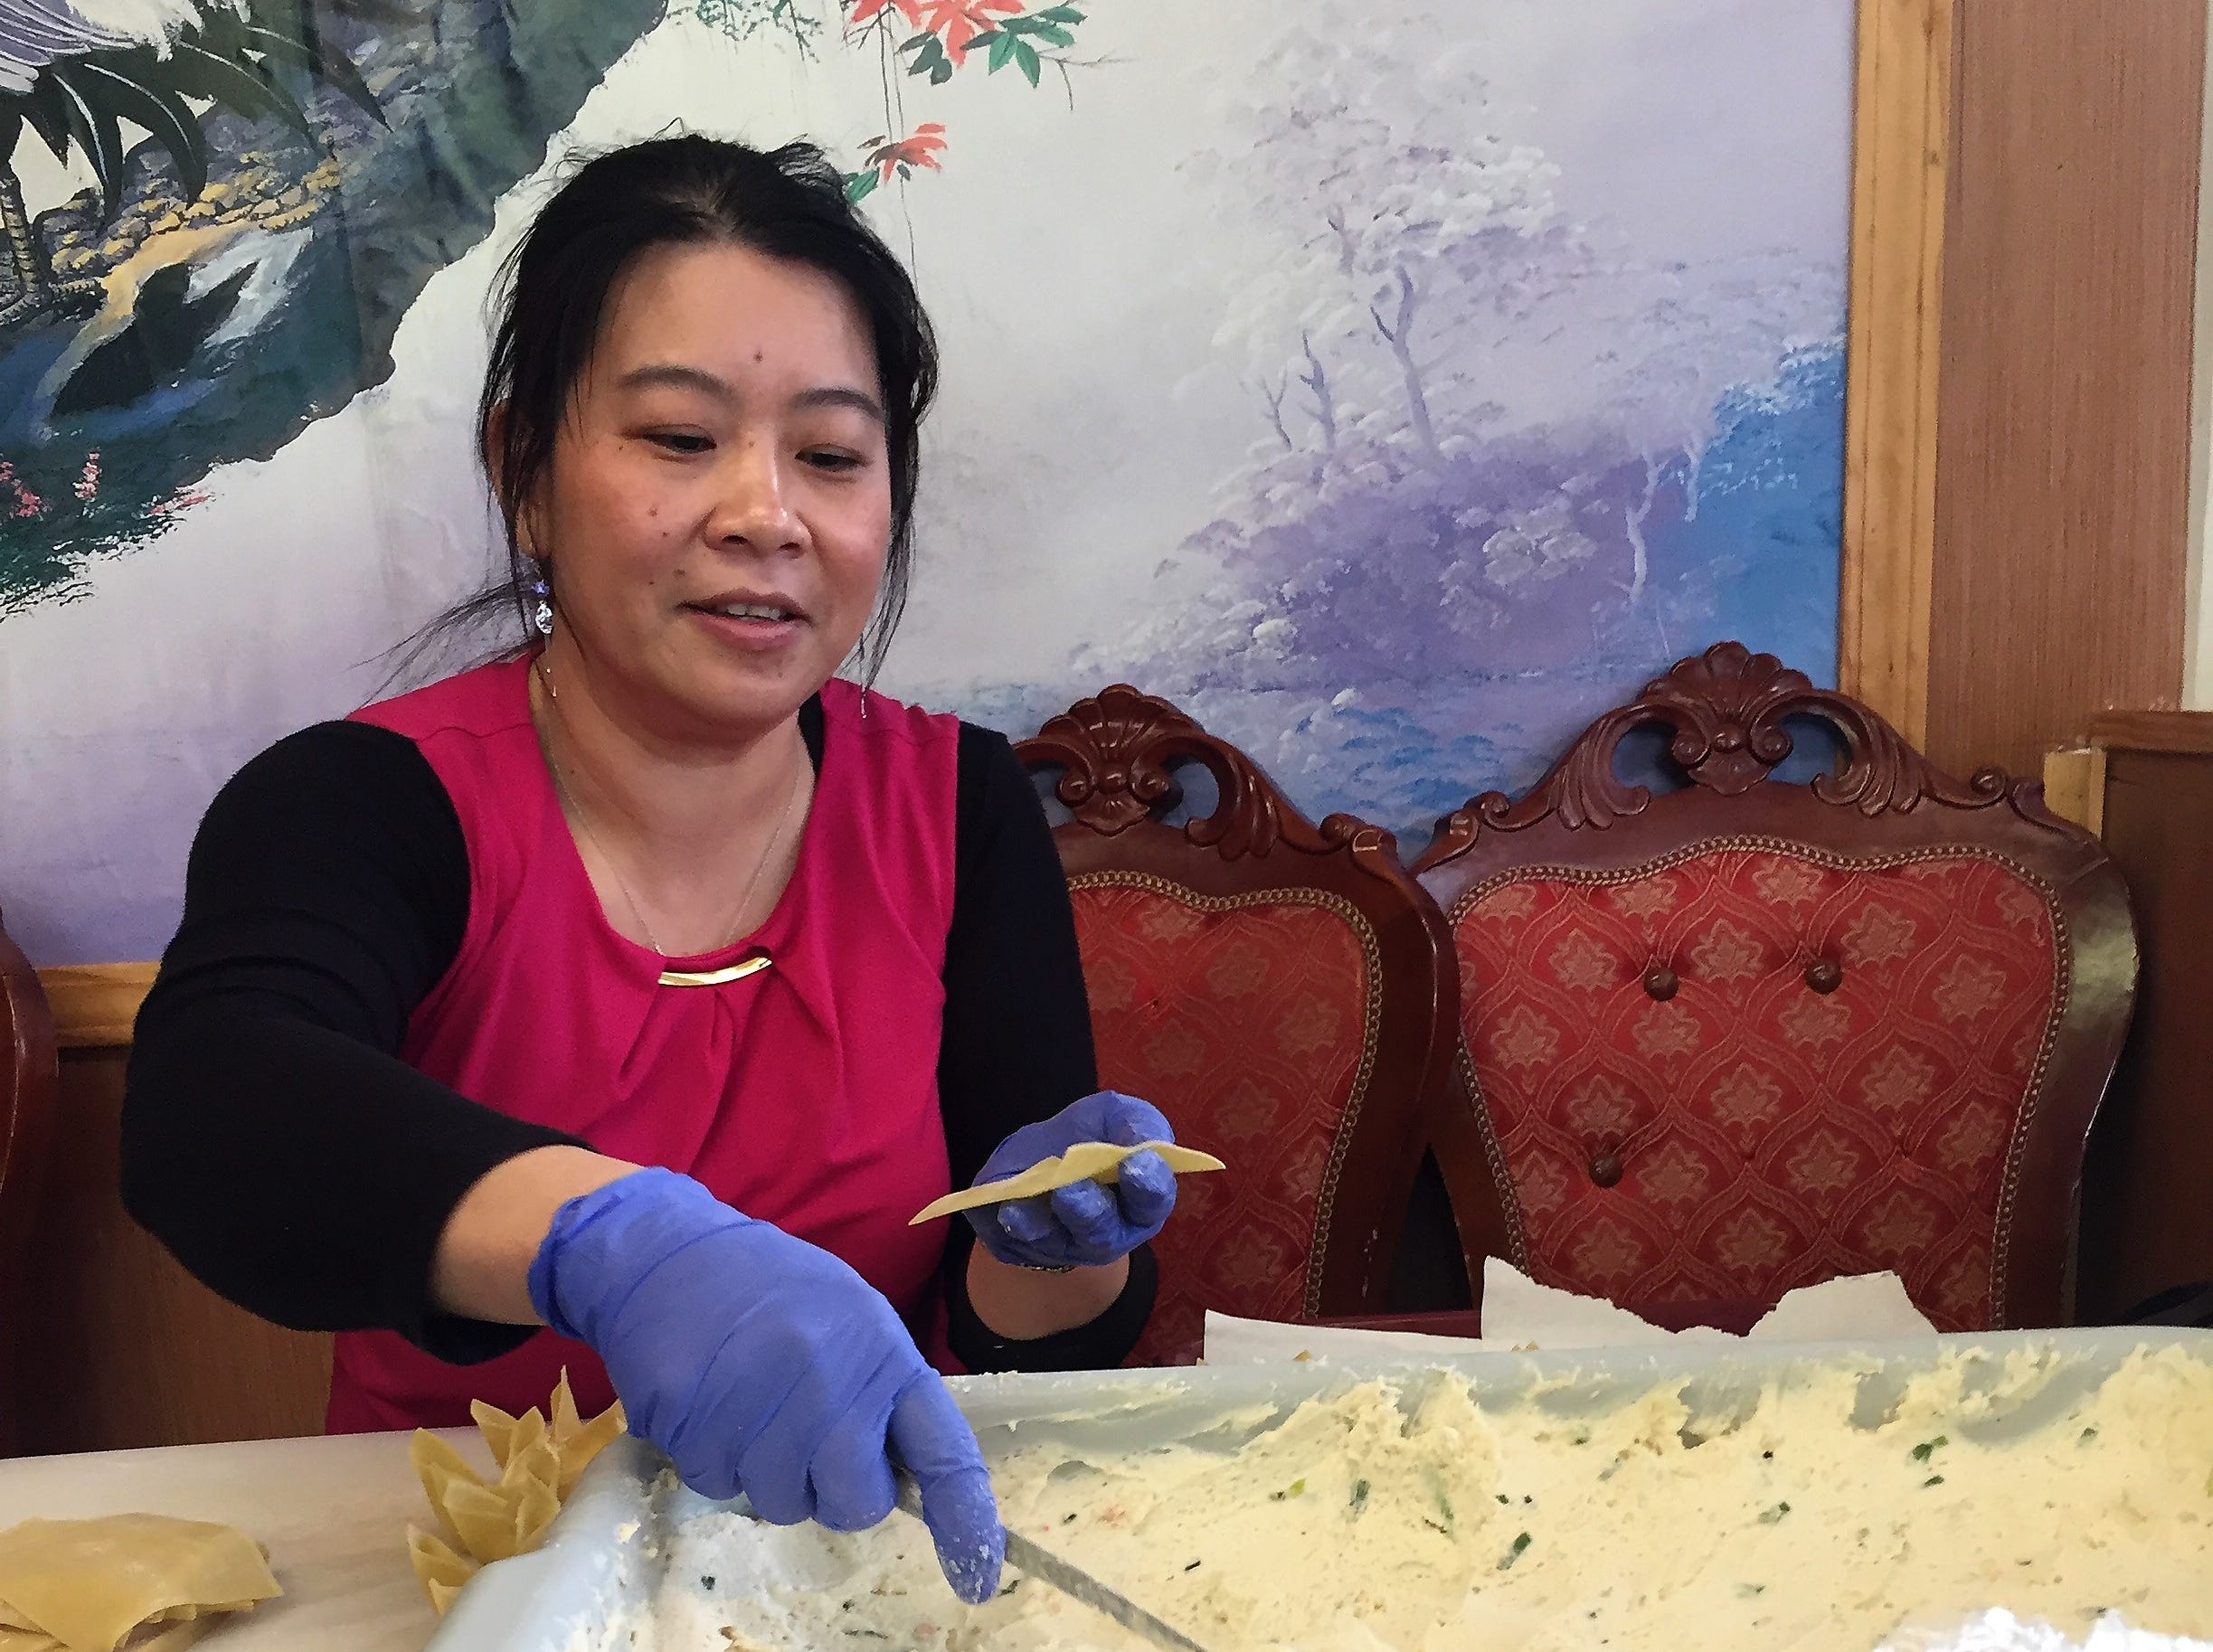 Xue Ying of Yum Yum Chinese Restaurant in Henderson mixes filling and hand-folds hundreds upon hundreds of crab rangoon every week.